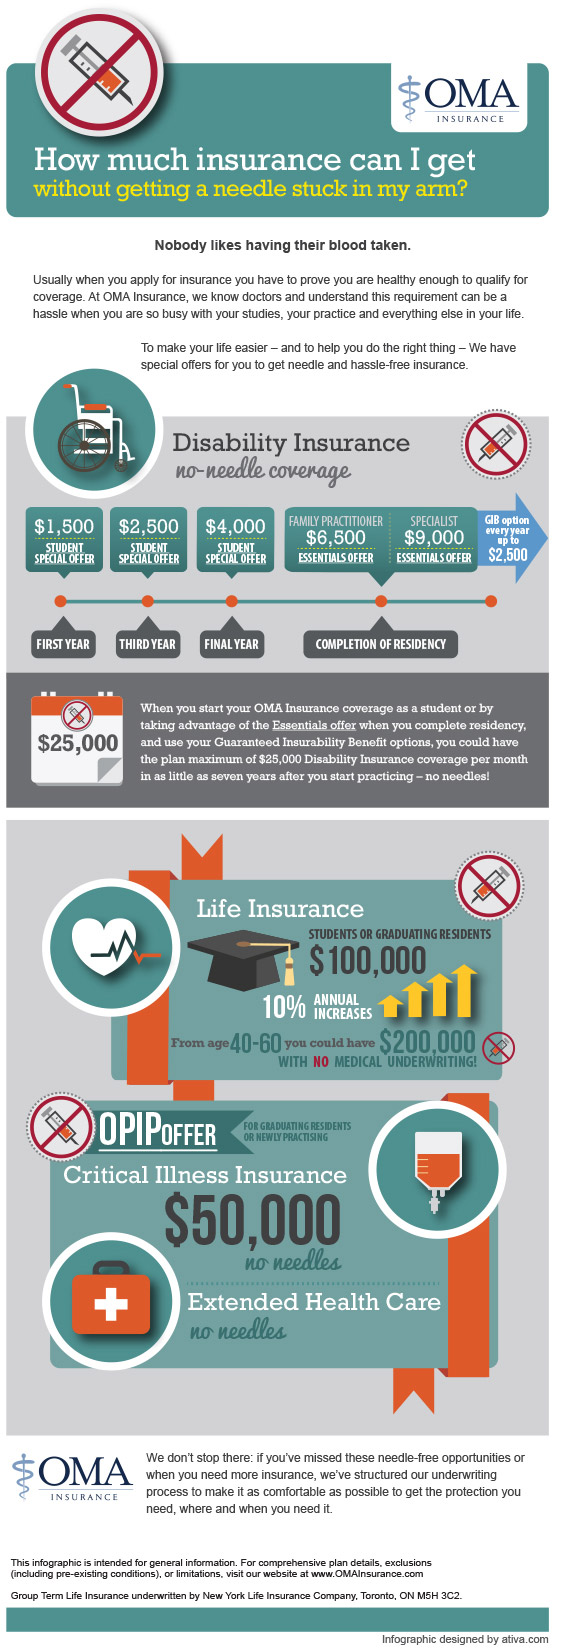 OMA Insurance Infographic